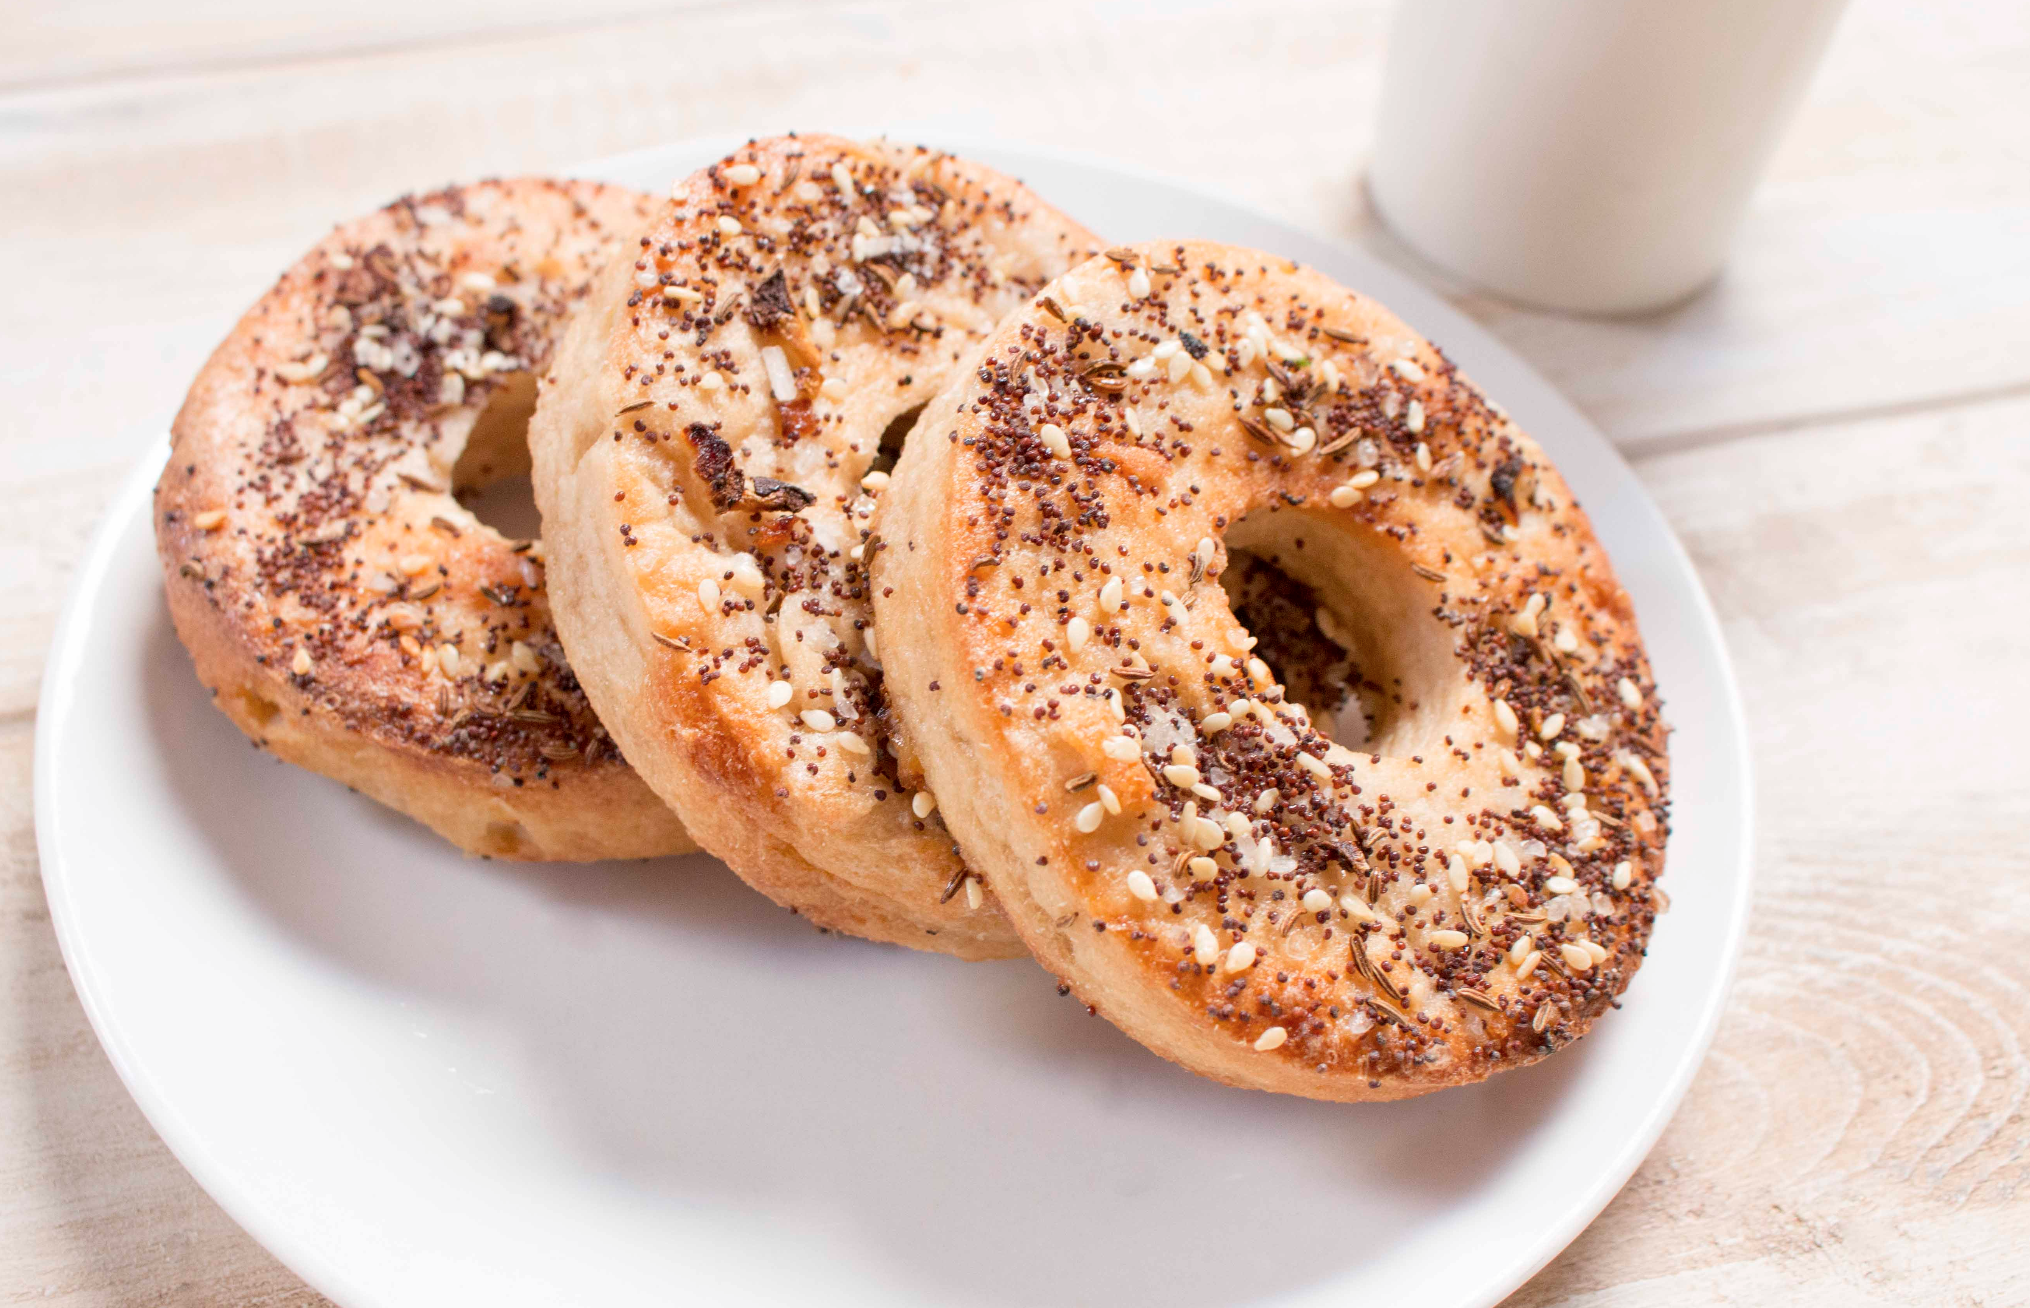 Yiddish Kitchen's Everything Bagel